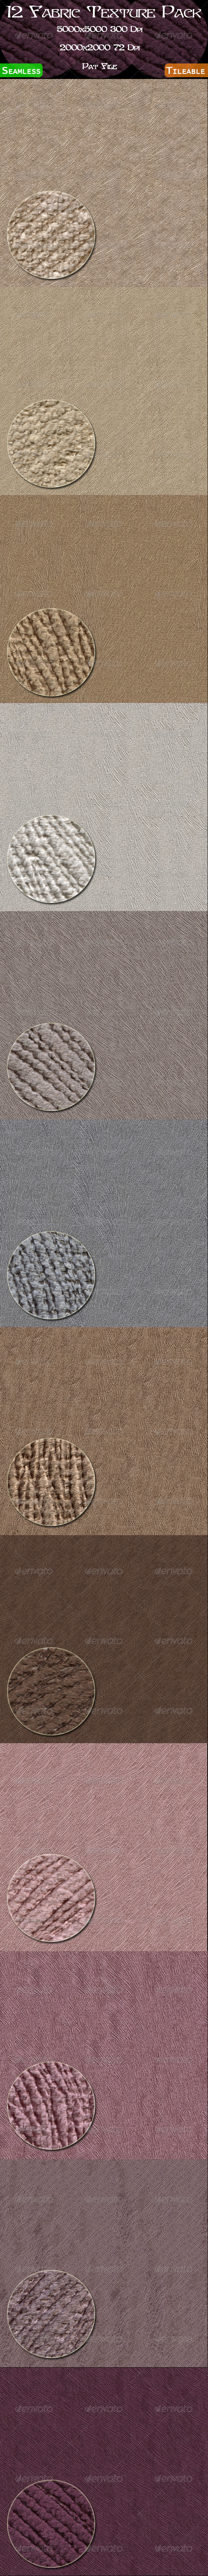 GraphicRiver 12 Fabric Texture Pack 4484752